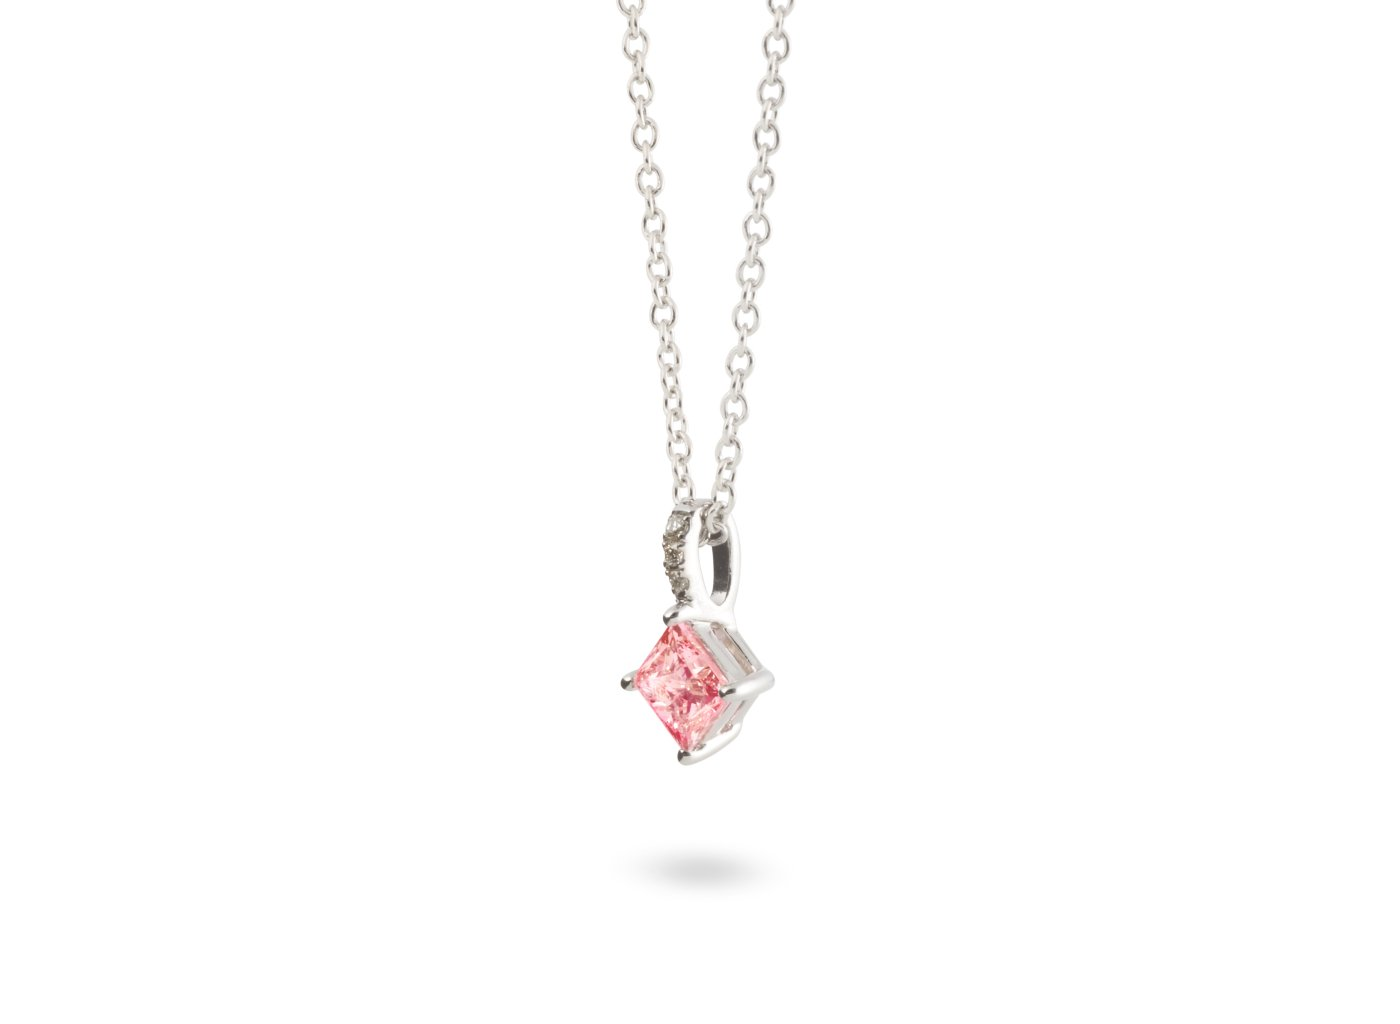 Side view of Princess pavé 1/2 carat pendant with pink and white diamonds